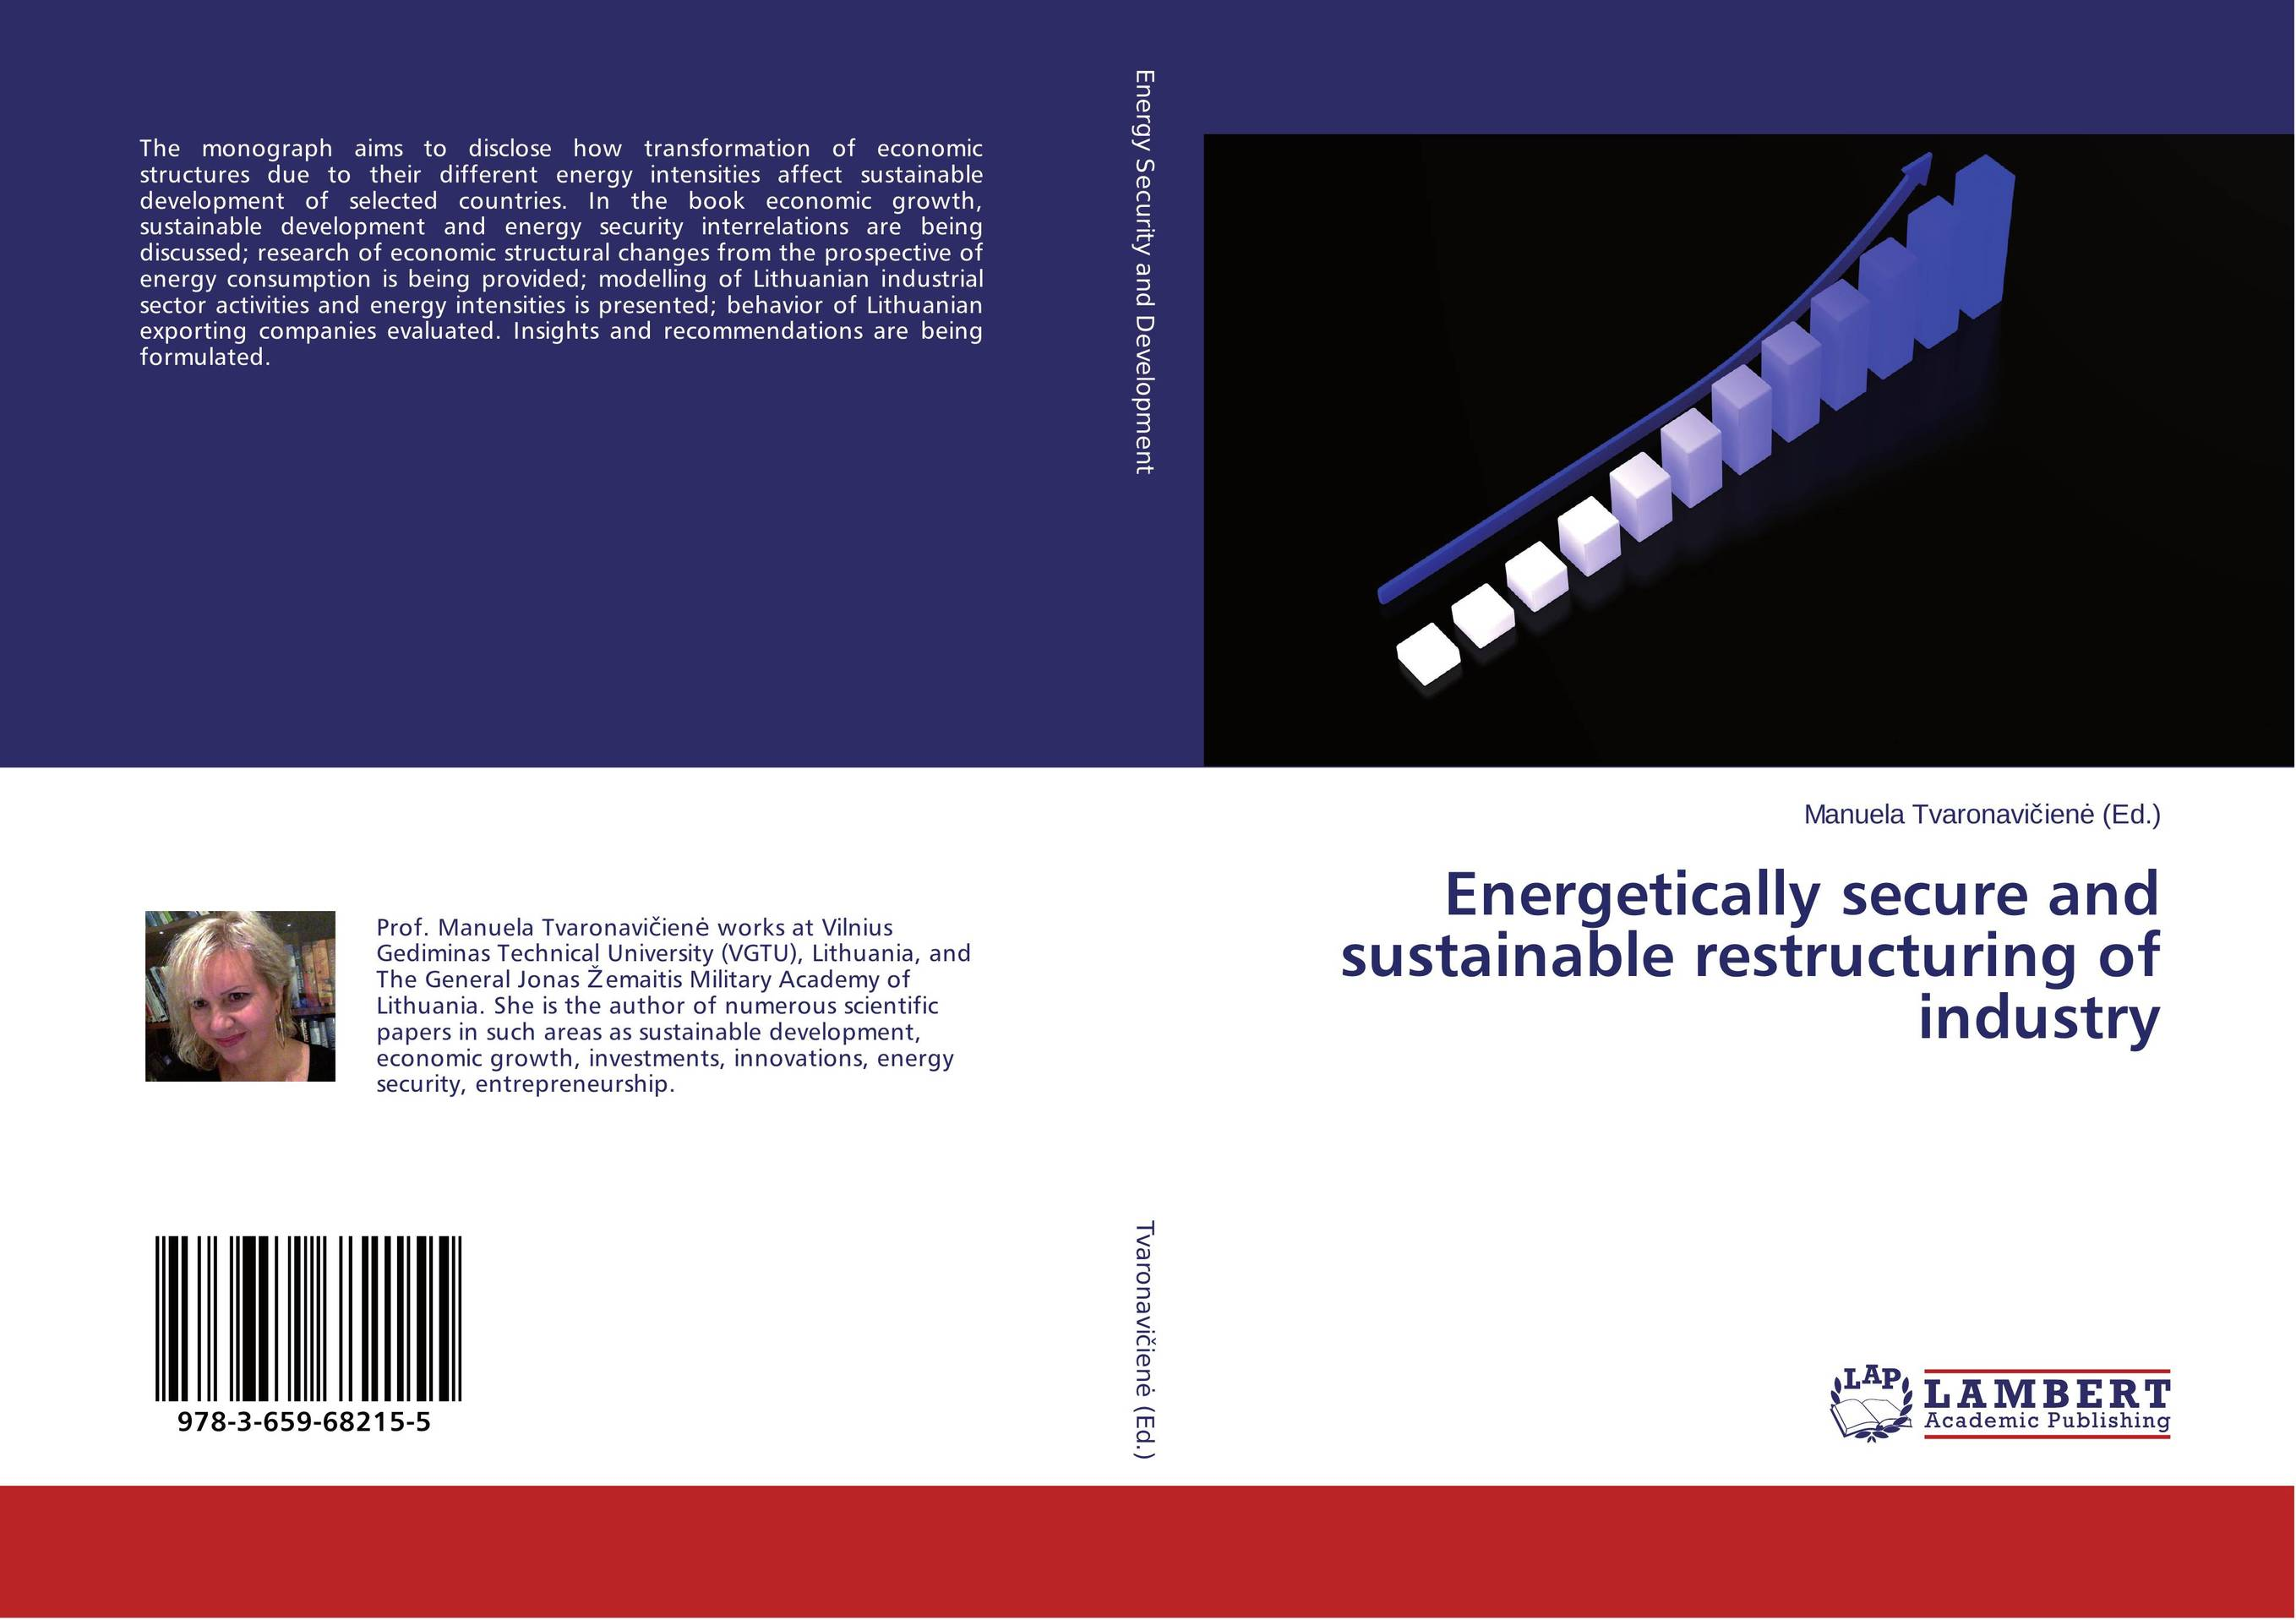 Energetically secure and sustainable restructuring of industry sustainable energy laboratory manual